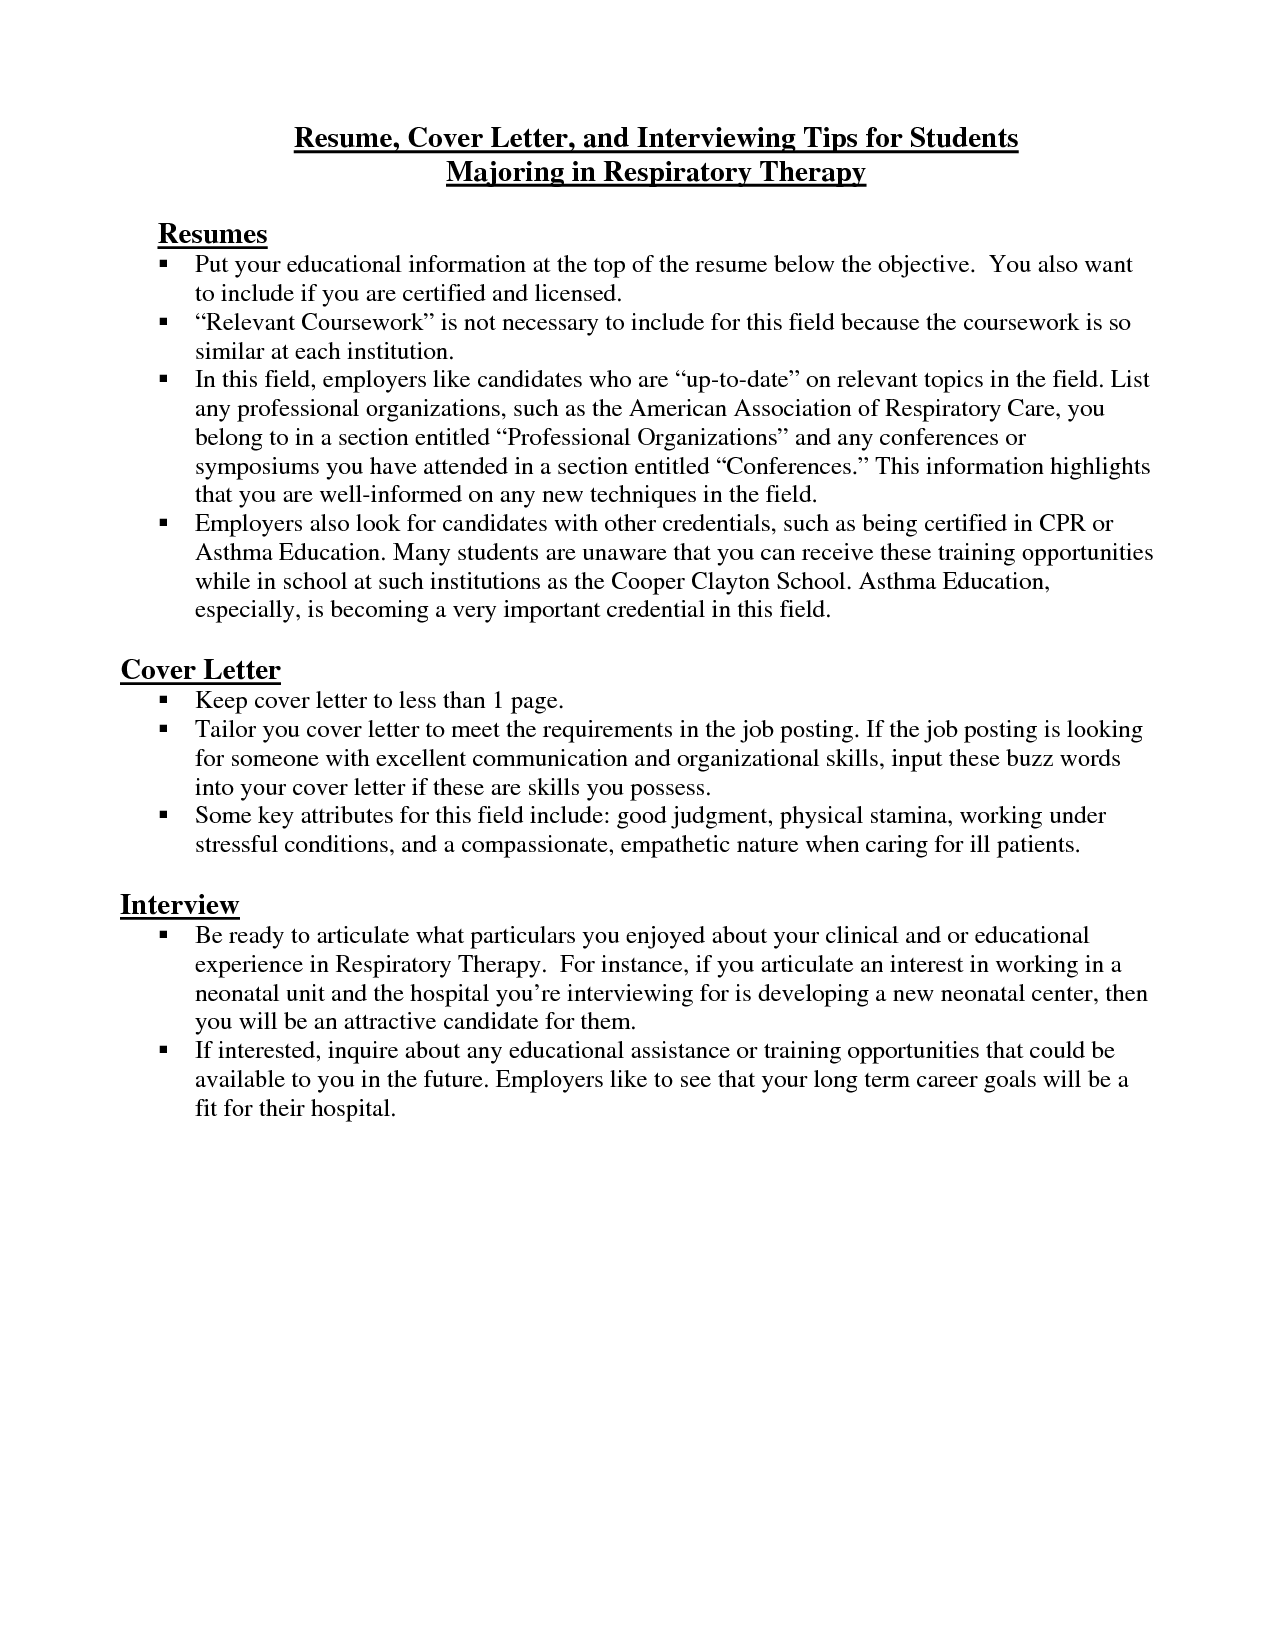 New Cover Letter For Therapist Job You Can Download For Full Letter Resume Template Here Http Cover Letter For Resume Job Cover Letter Respiratory Therapy